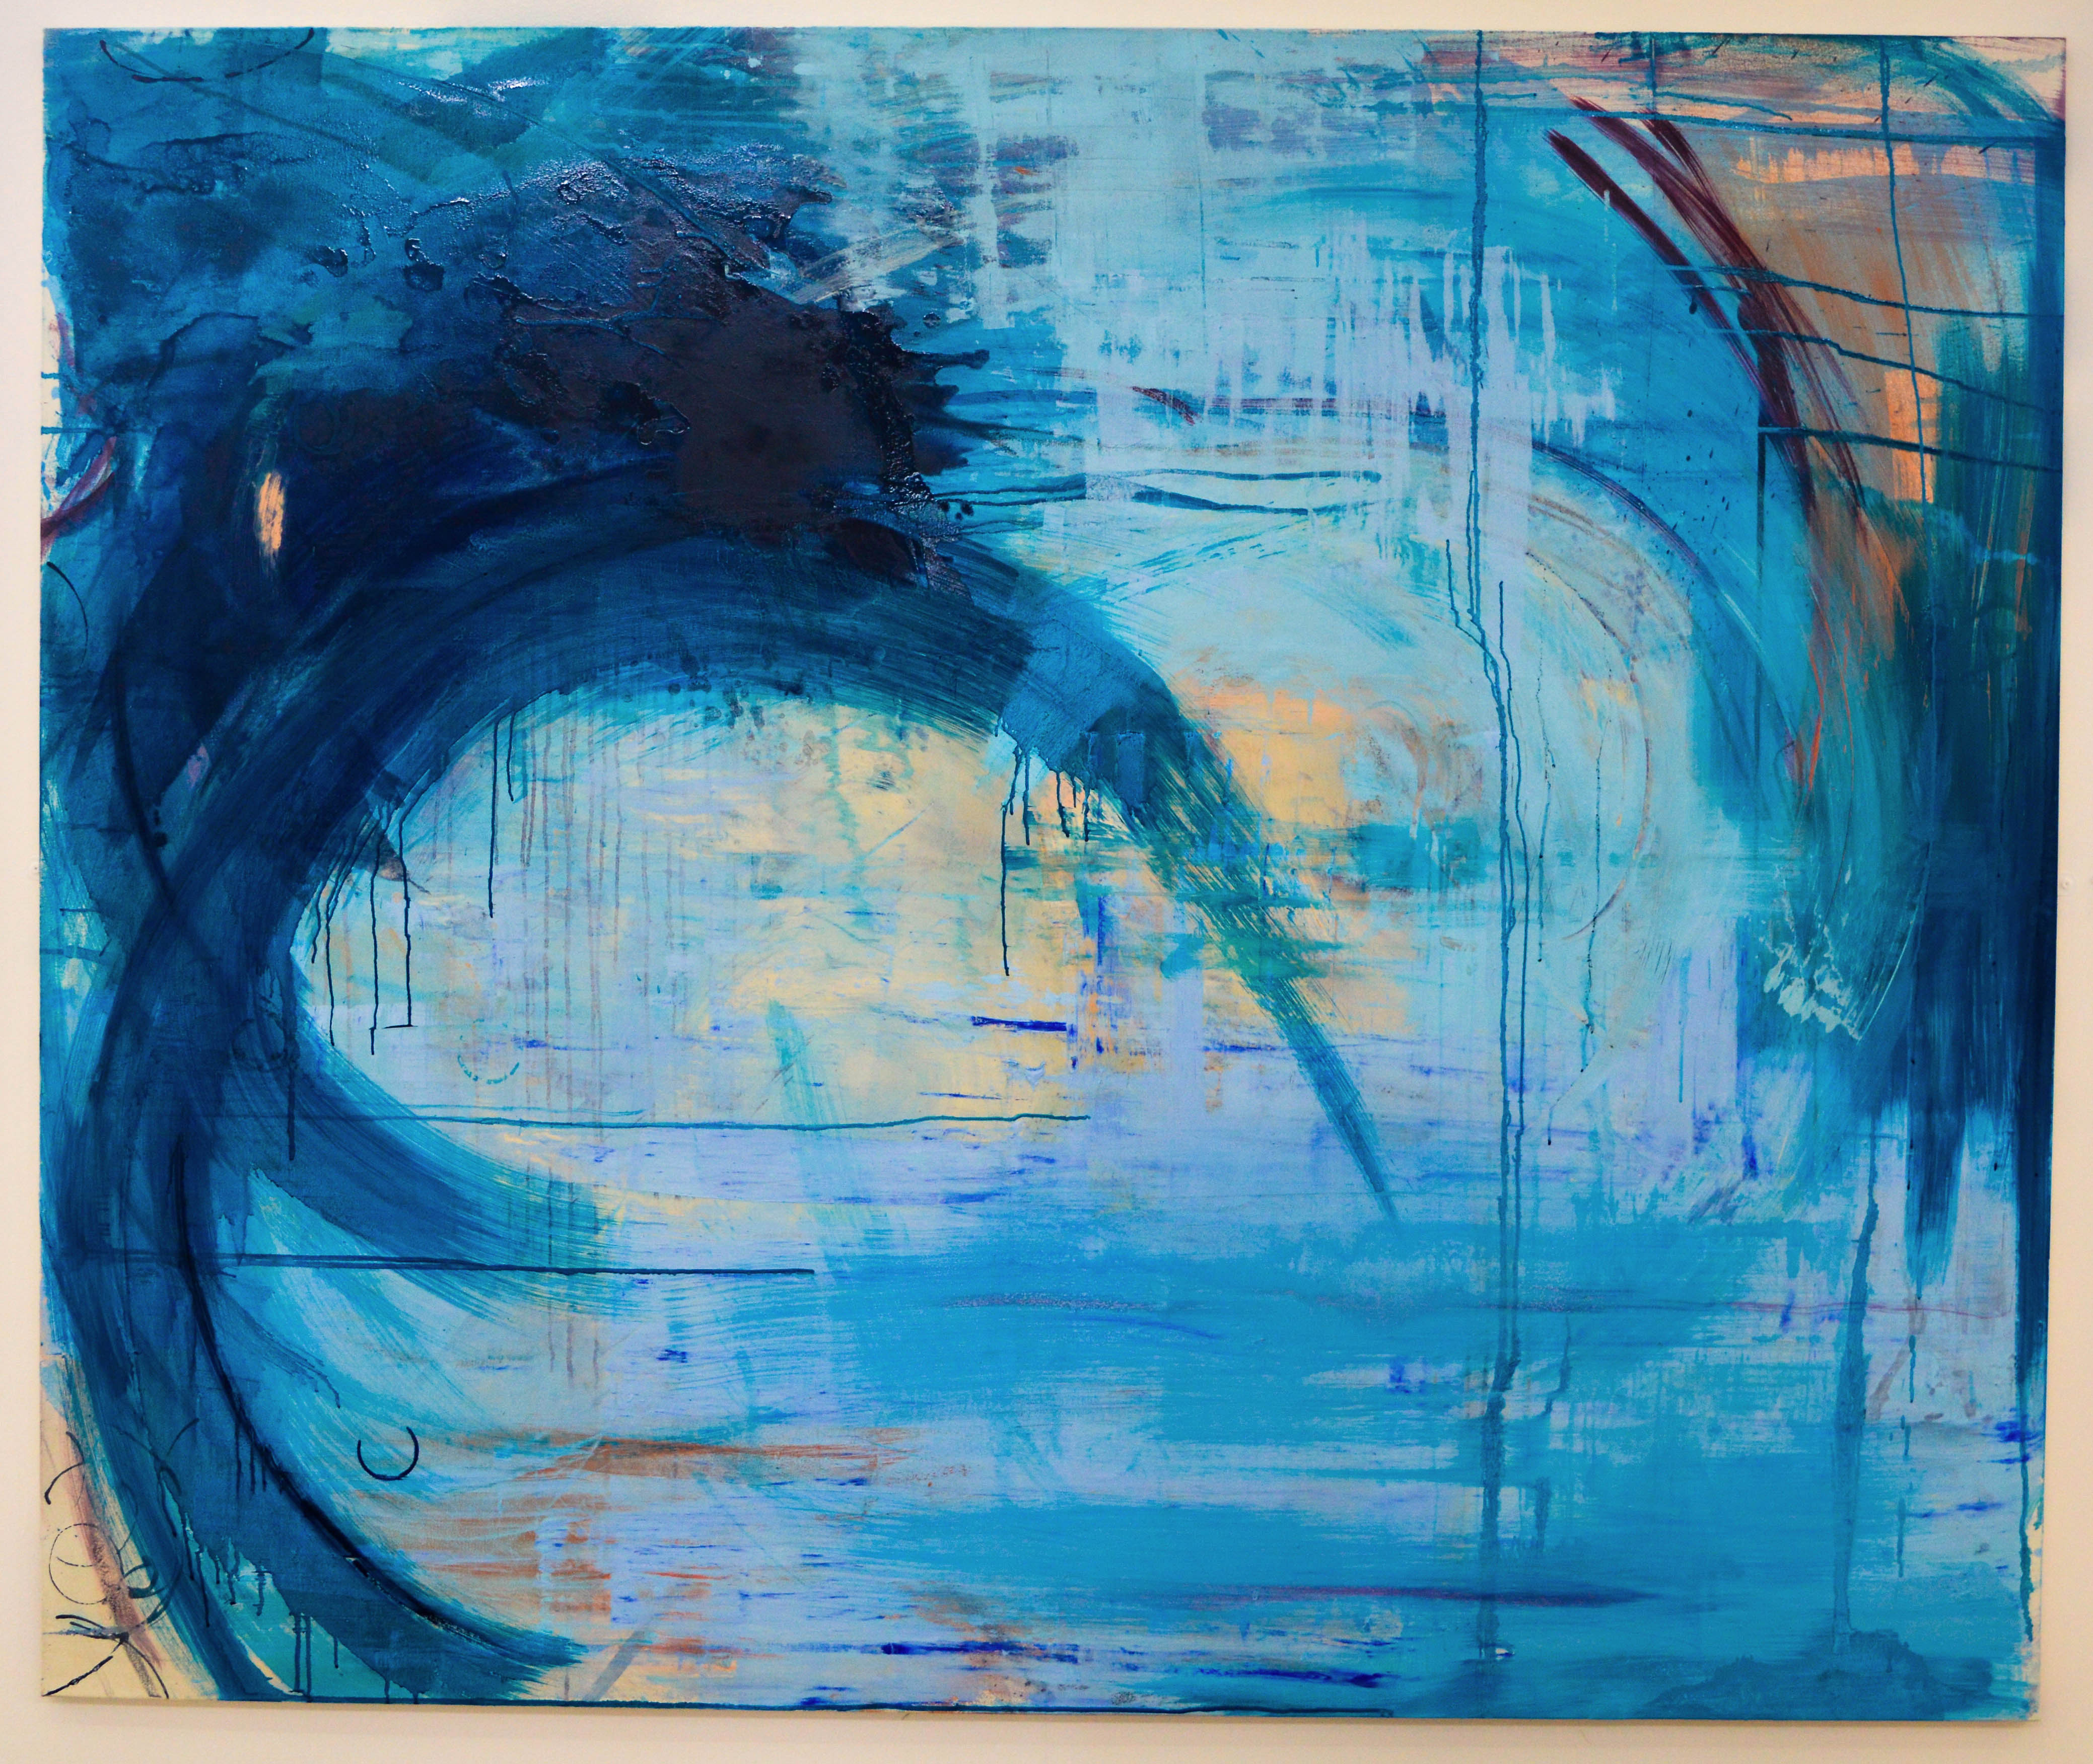 Blue Series 1. Oil on canvas. 213x177.5cm. For sale.